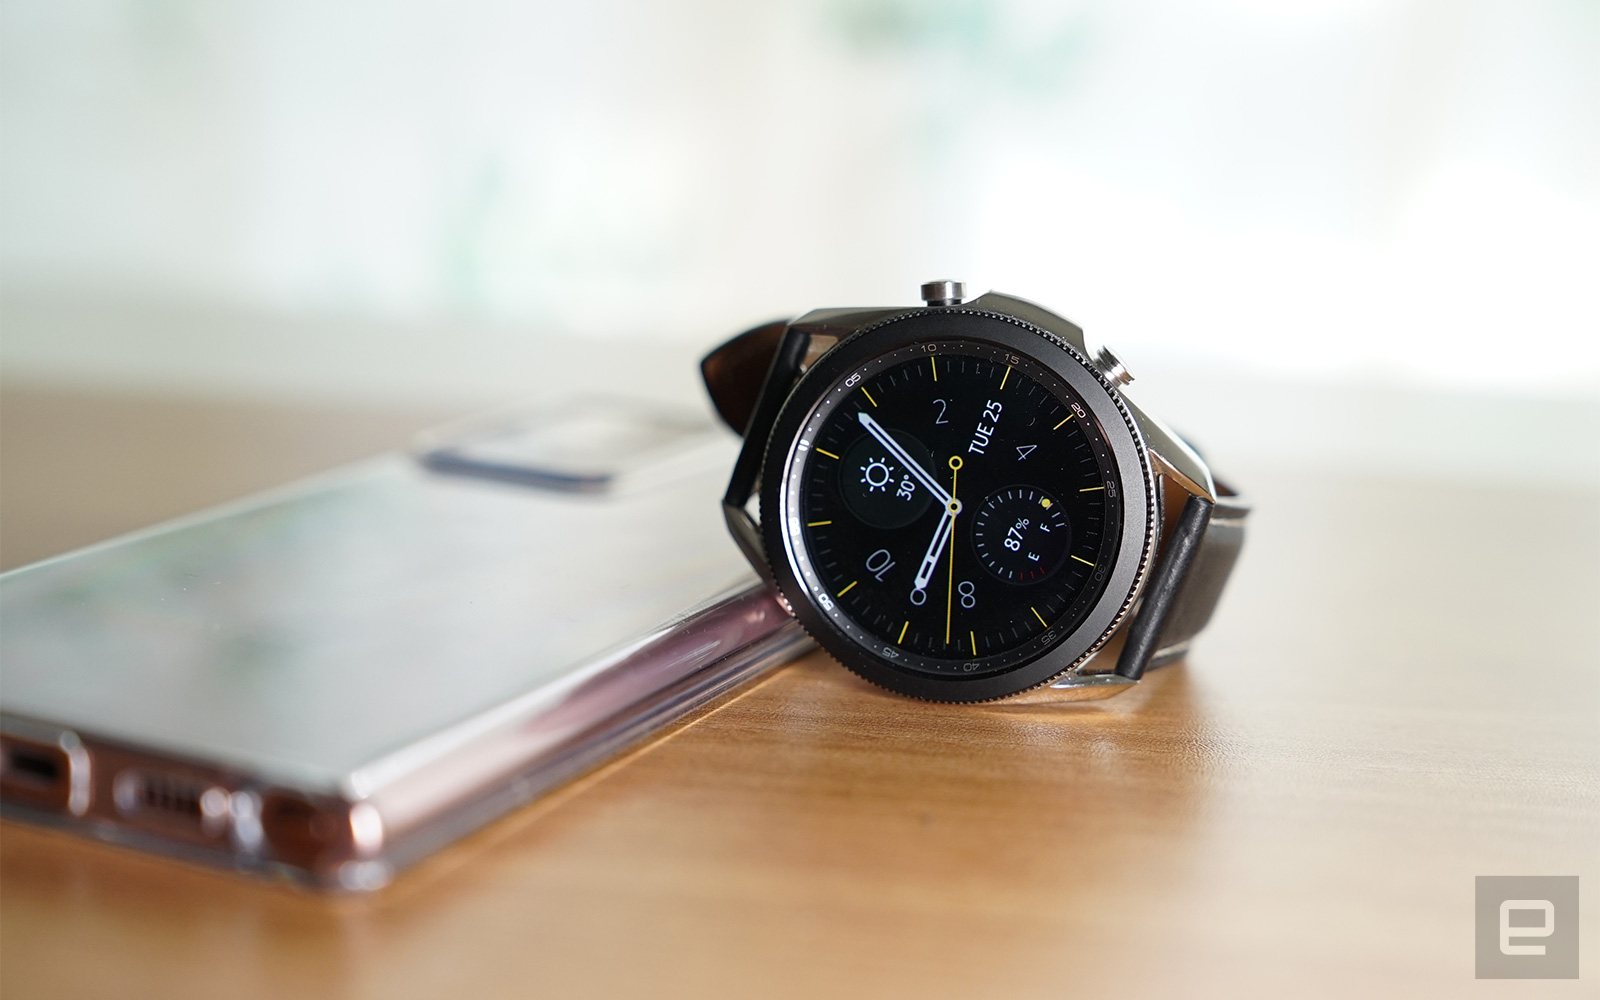 Samsung Galaxy Watch 3 評測